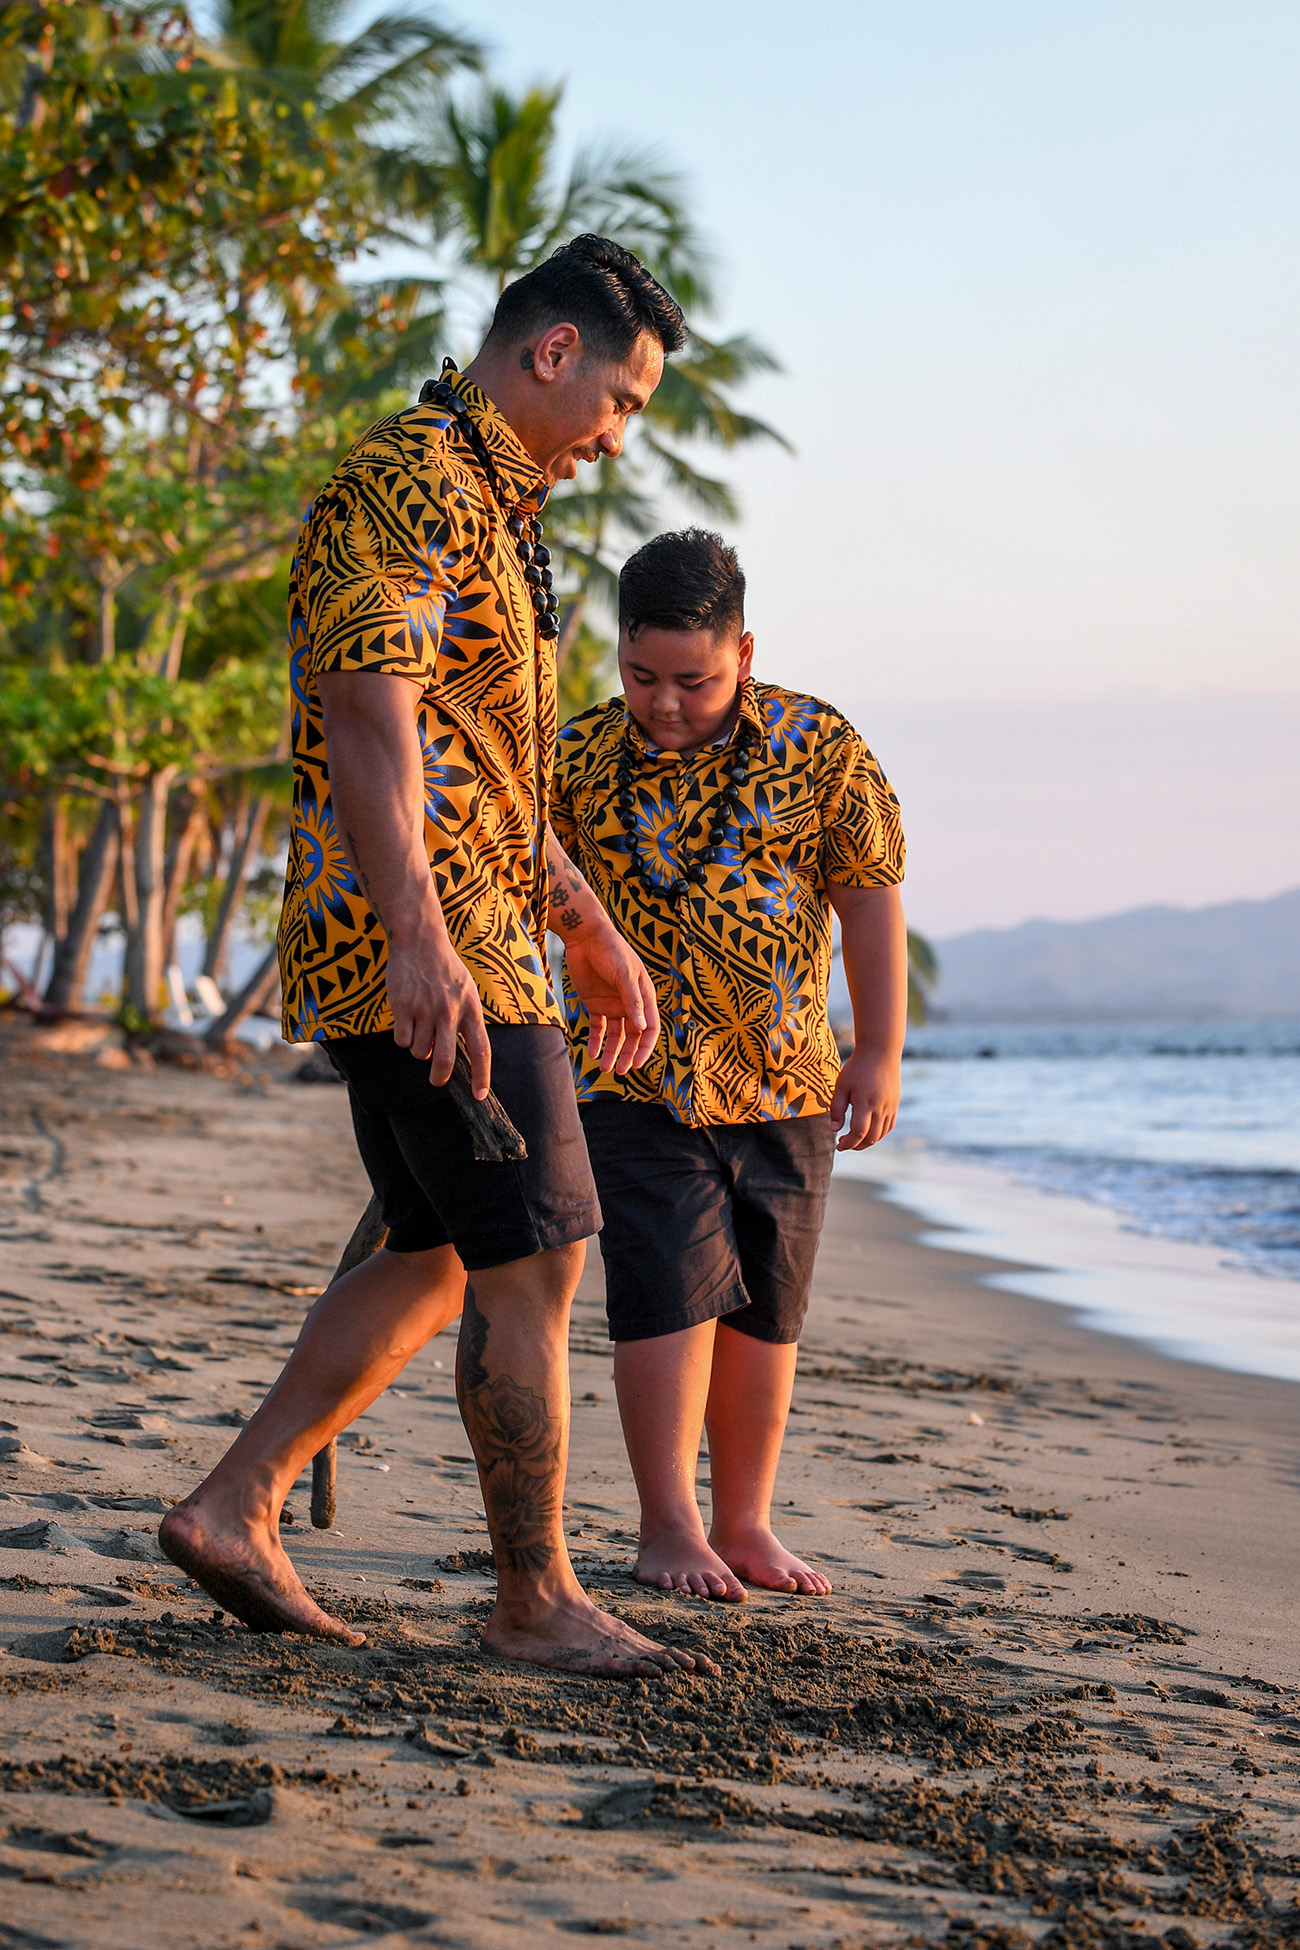 Father and son with muddy feet play with the sand on the beach